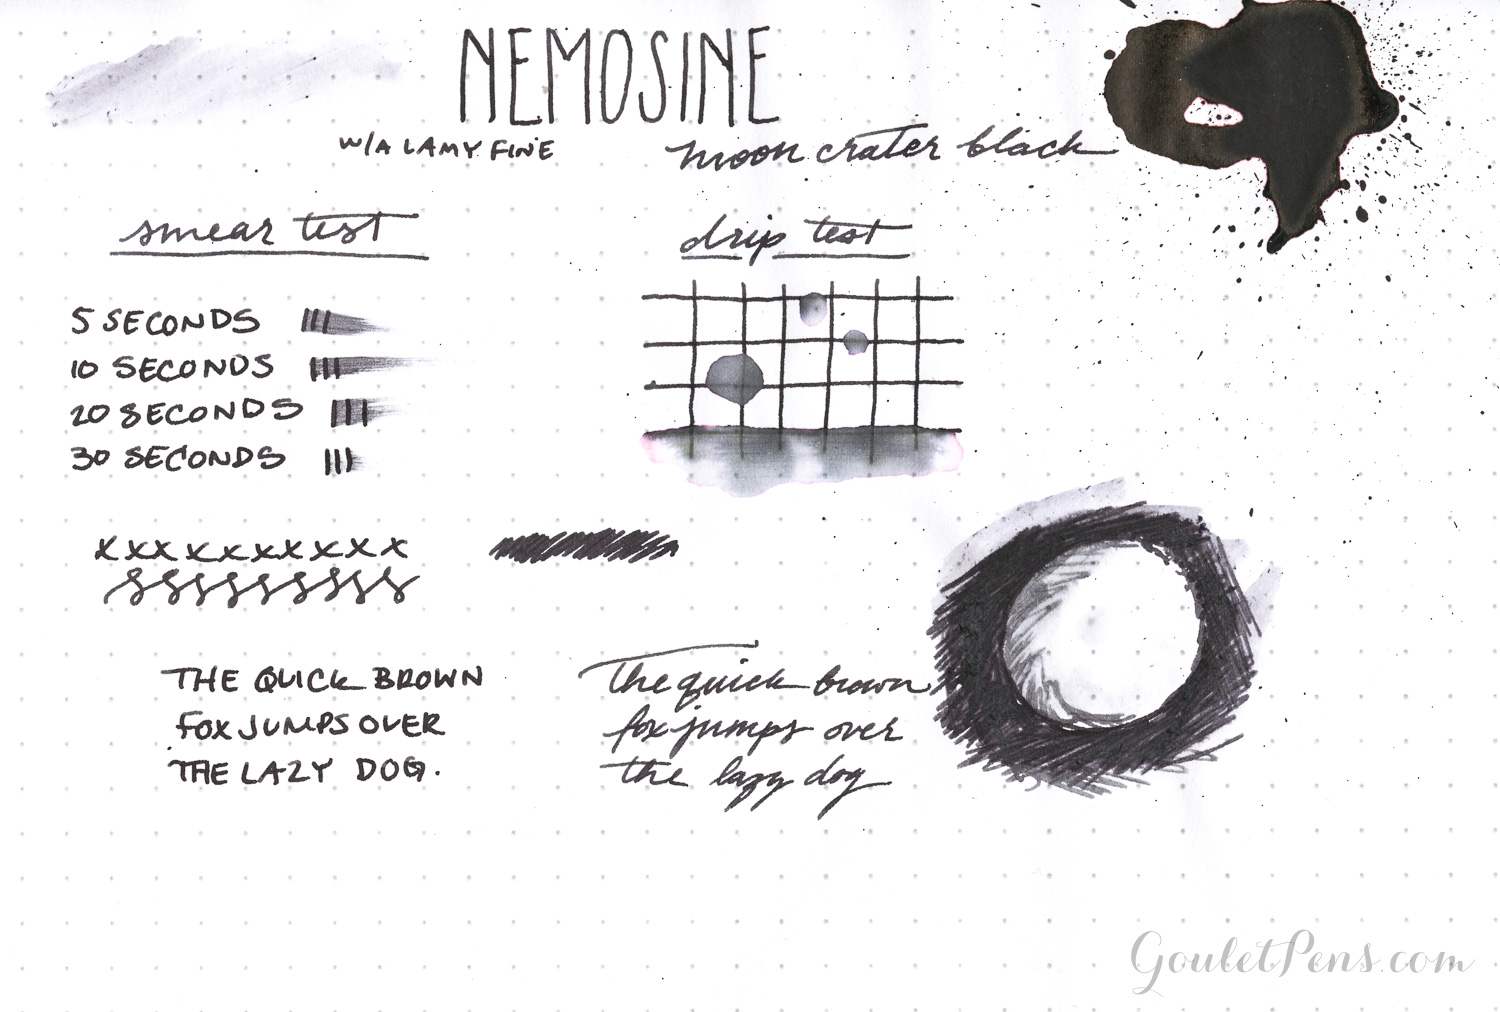 Nemosine Ink - Moon Crater Black